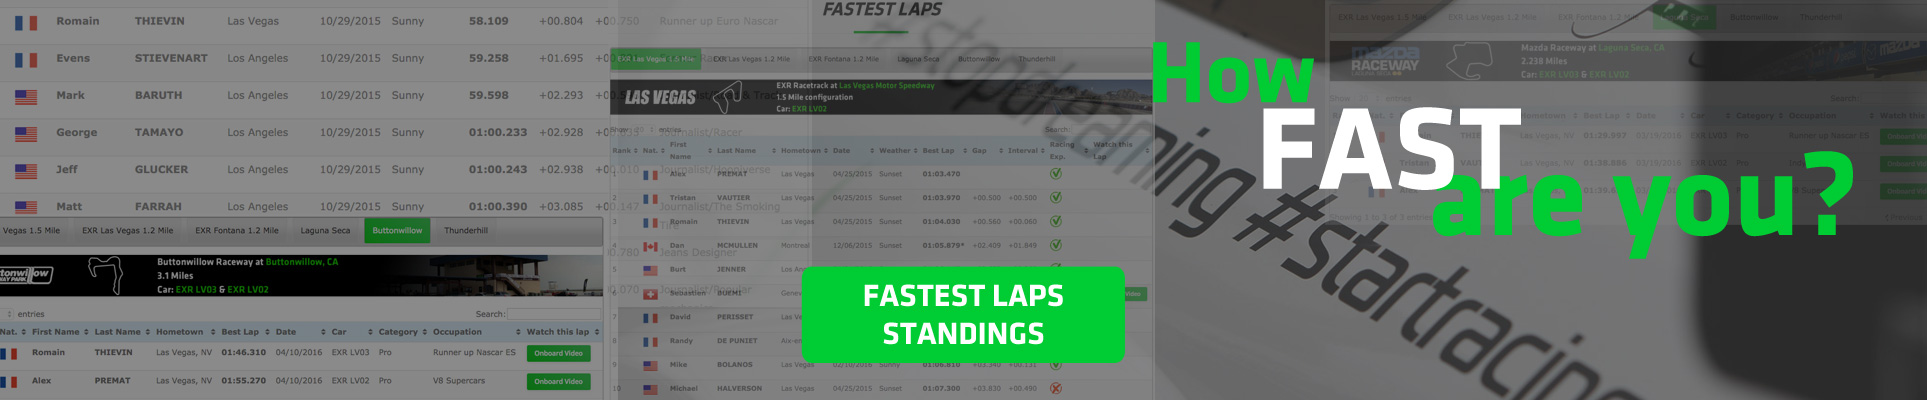 Fastest_Laps_blocks